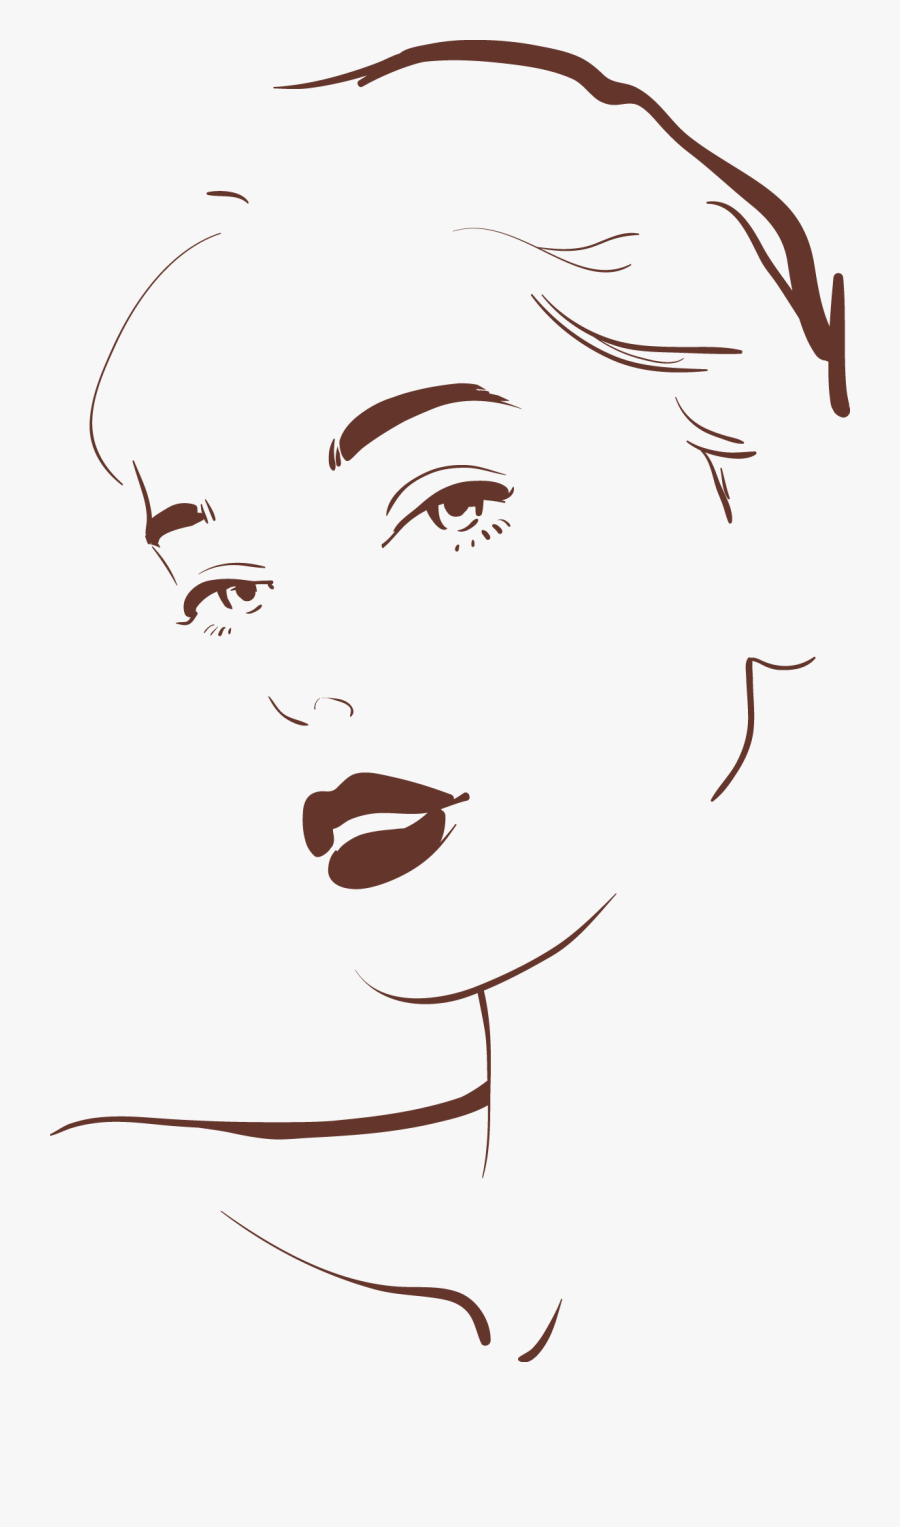 Drawing Woman Face Illustration - Woman Face Illustration Png, Transparent Clipart